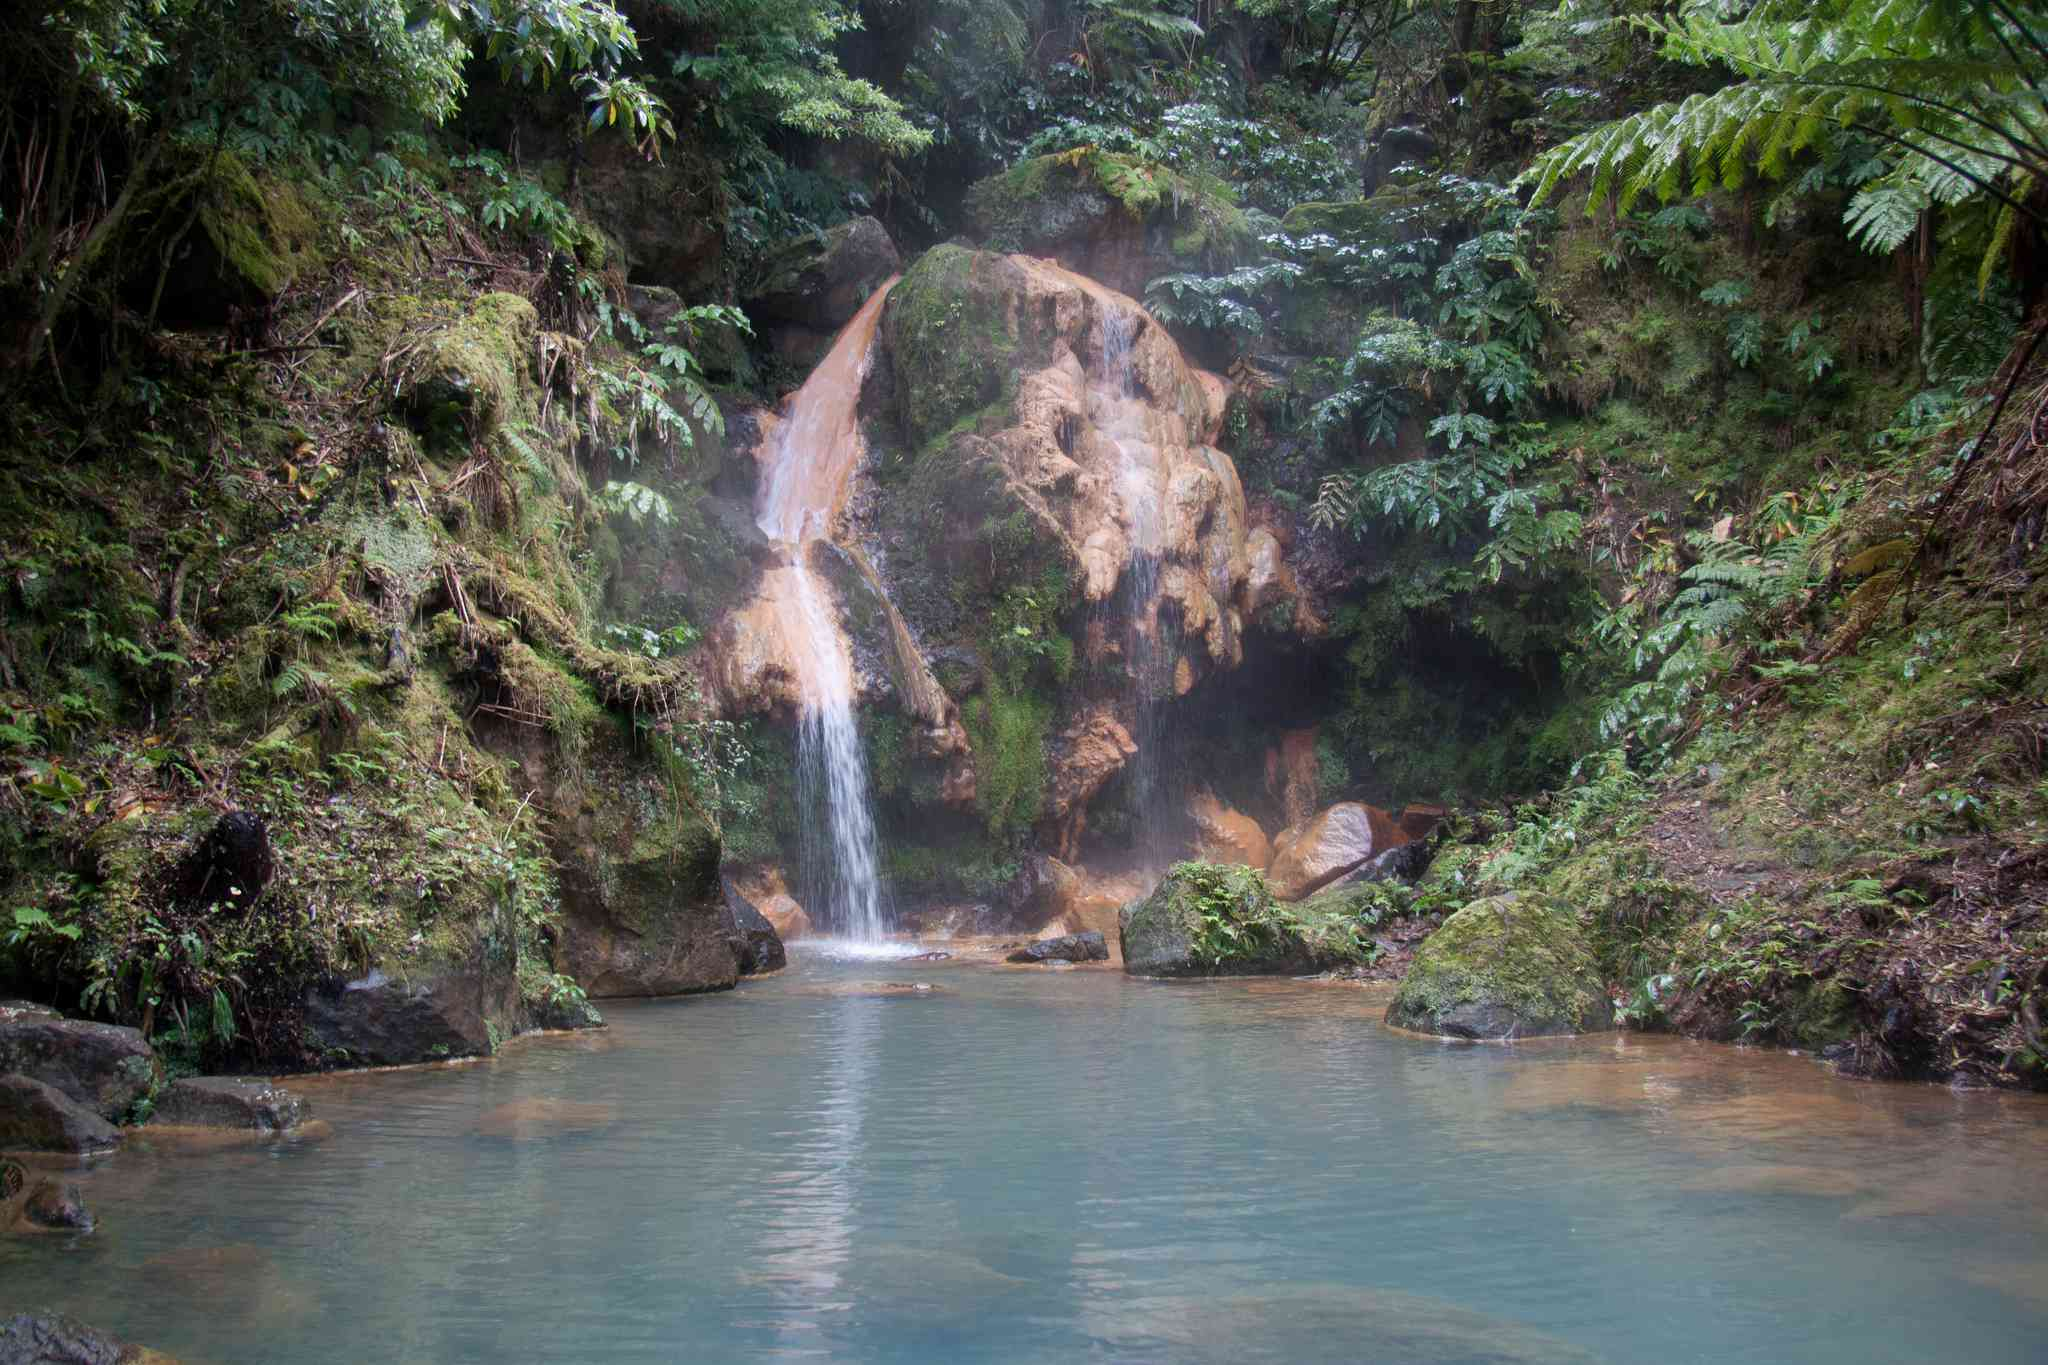 A waterfall flows into the hot springs at Caldeira Velha